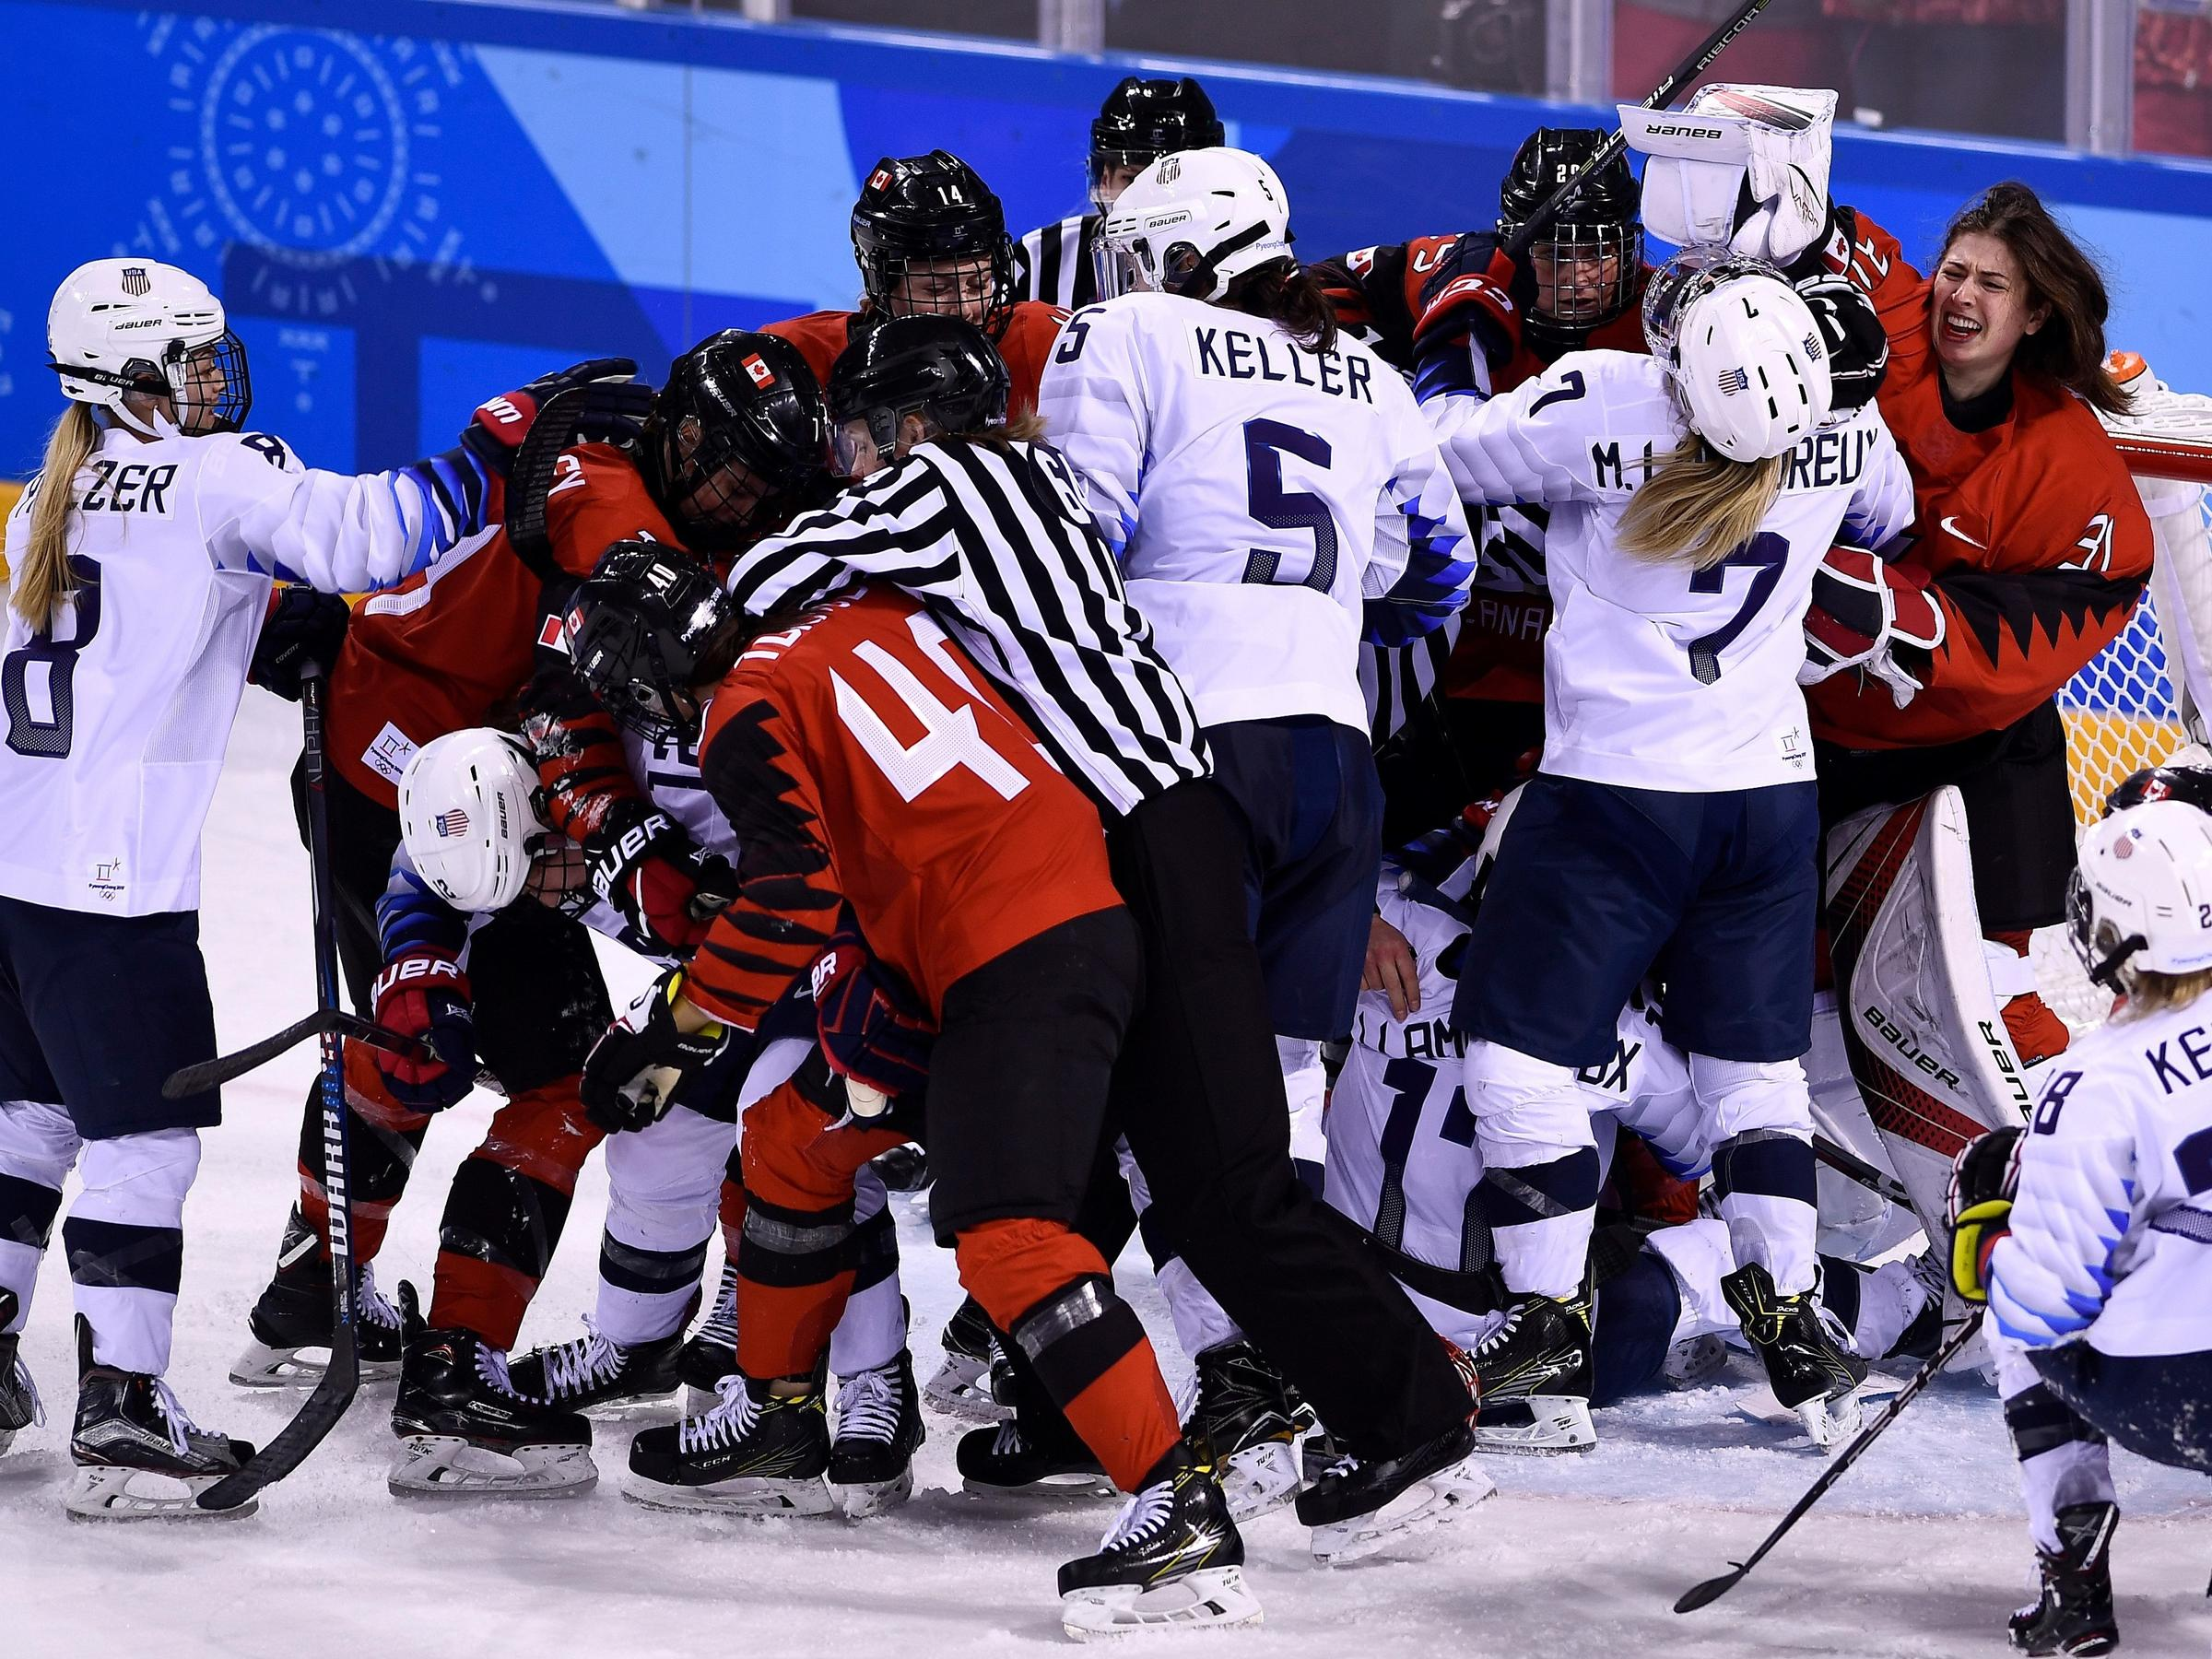 Ice hockey: Future of unified Korean team not a given - coach